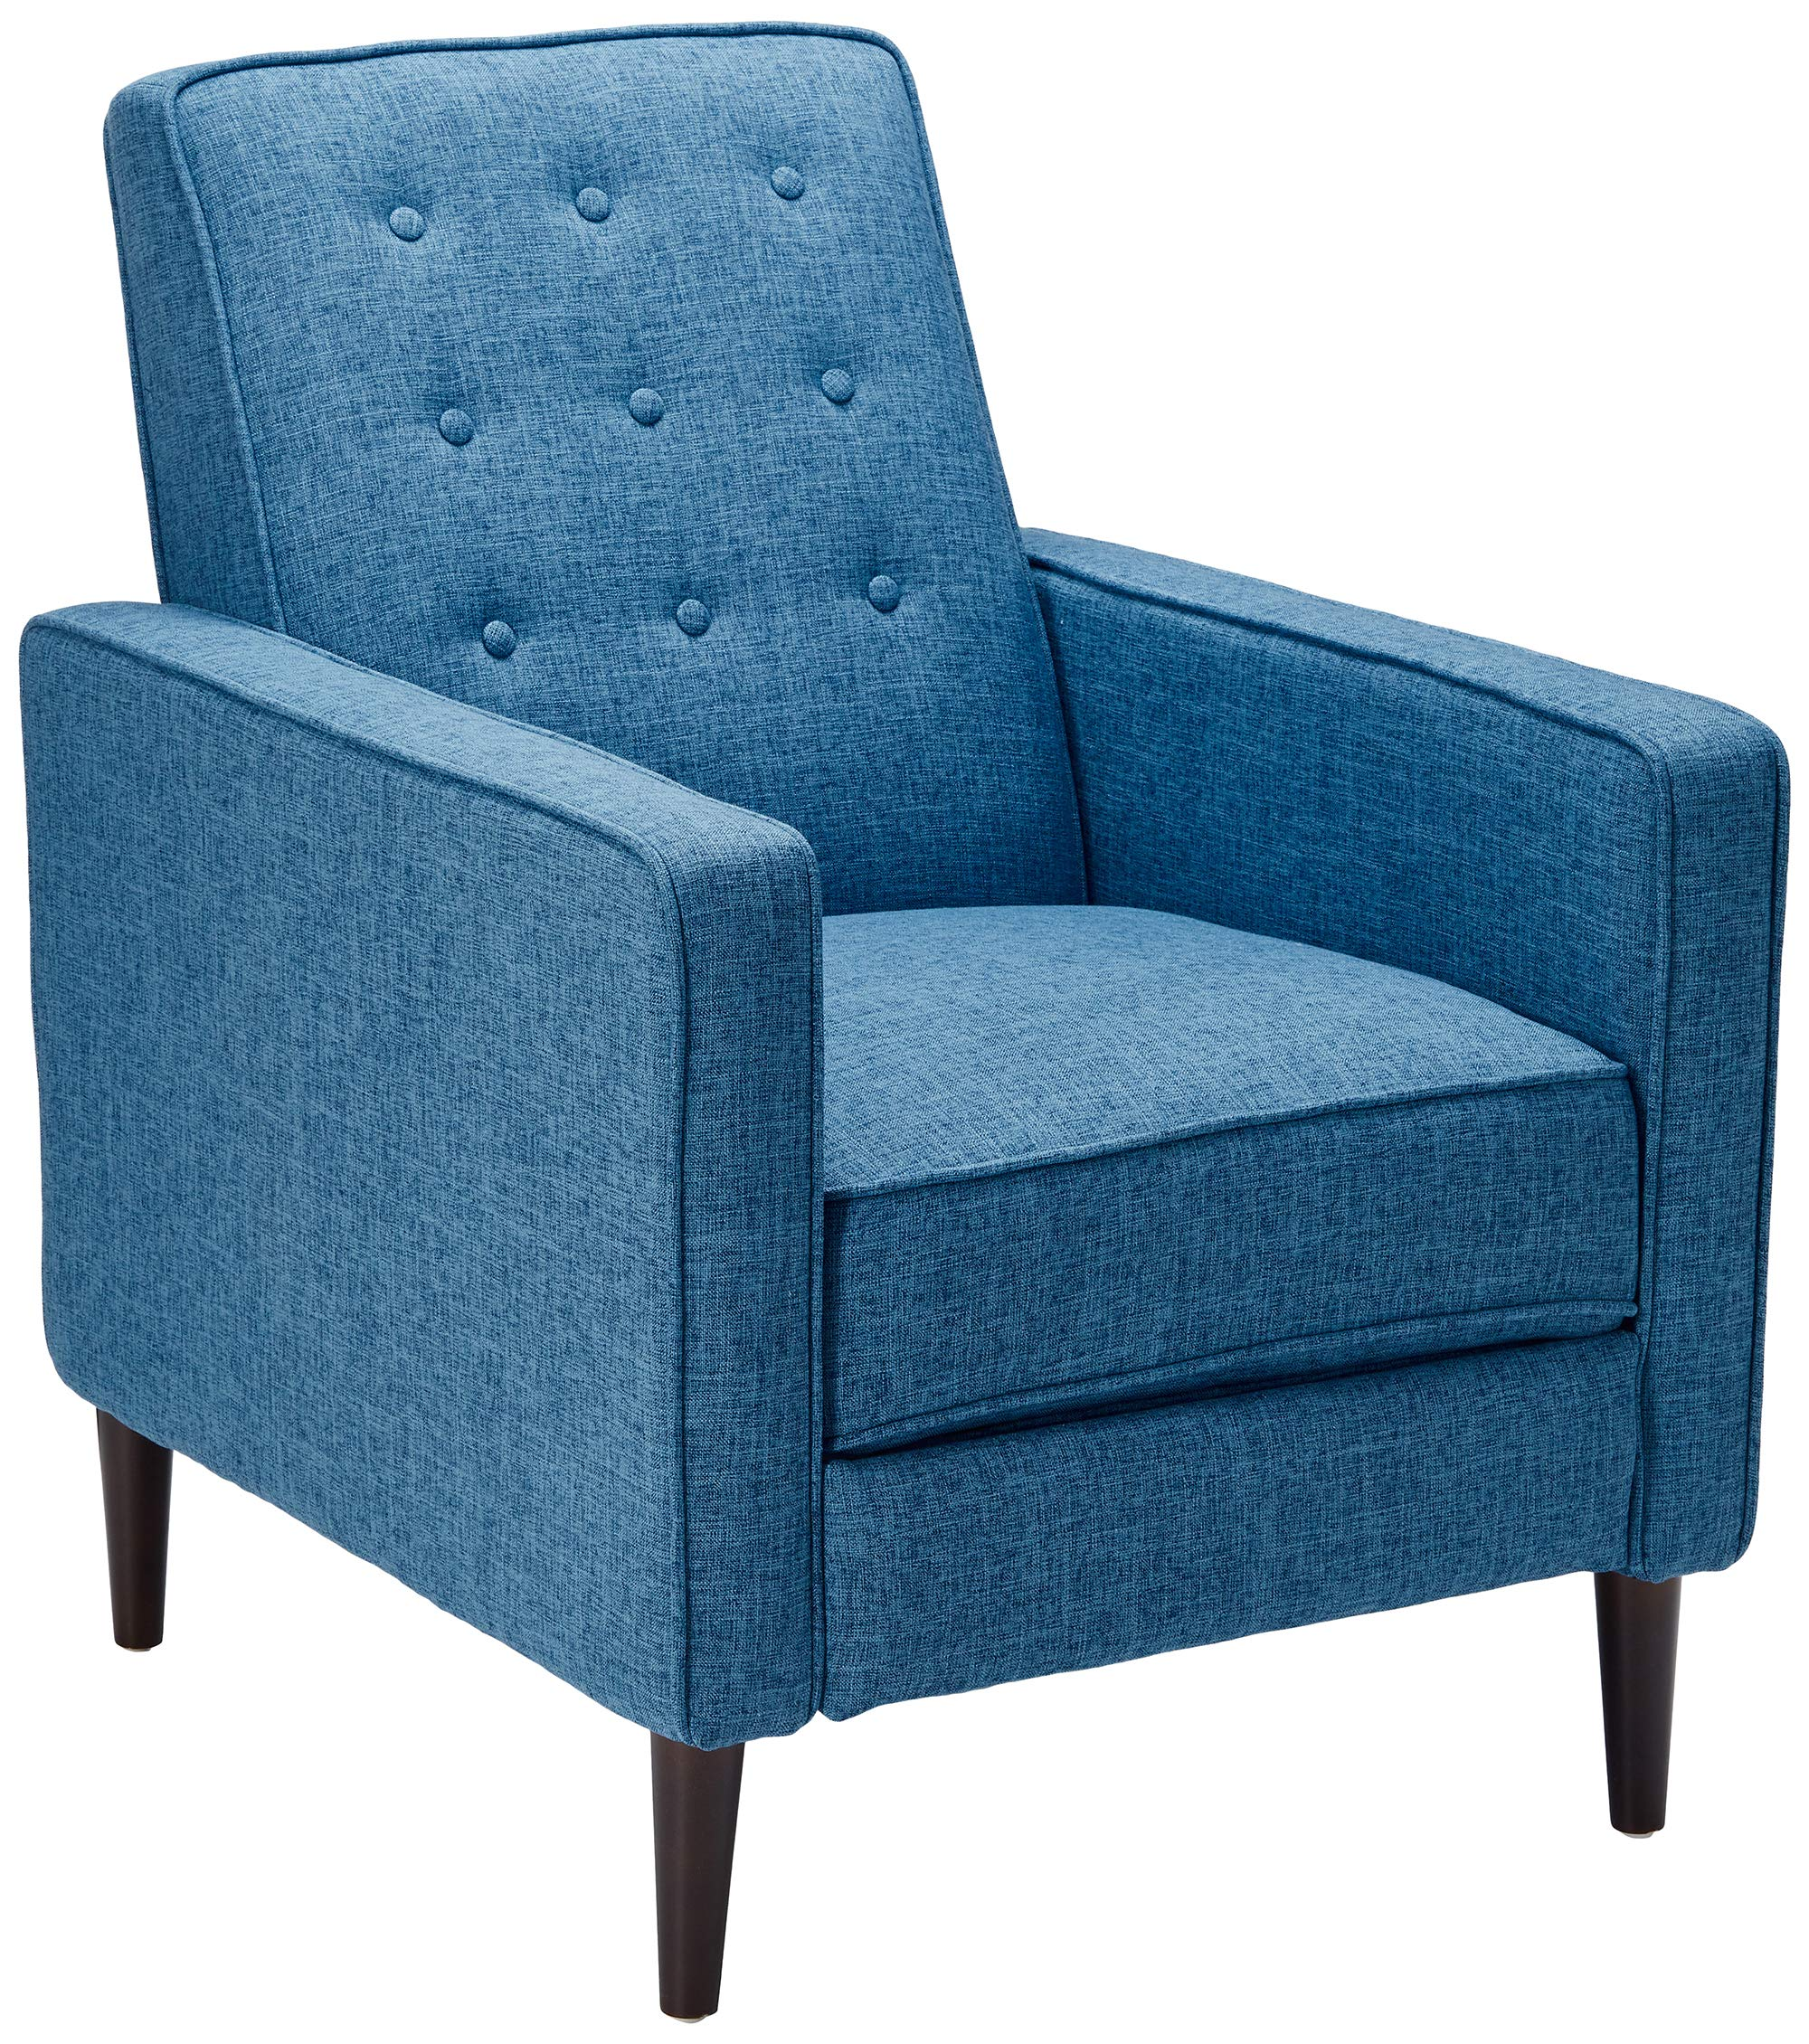 Christopher Knight Home Mervynn Mid-Century Modern Fabric Recliner, Muted  Blue